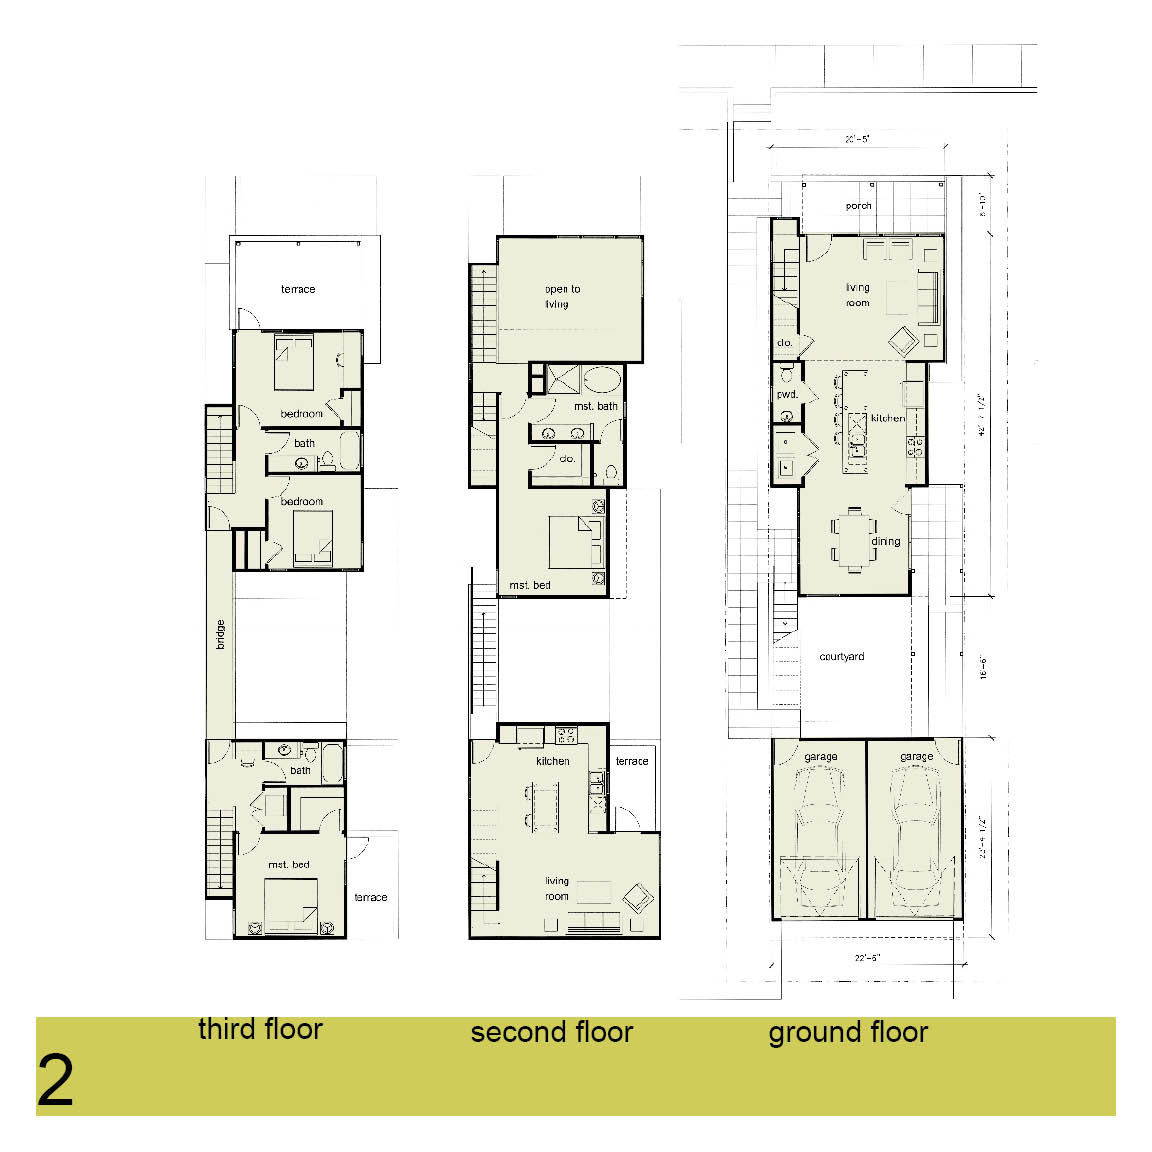 urban infill house plans 28 images 2 story 3 bedroom